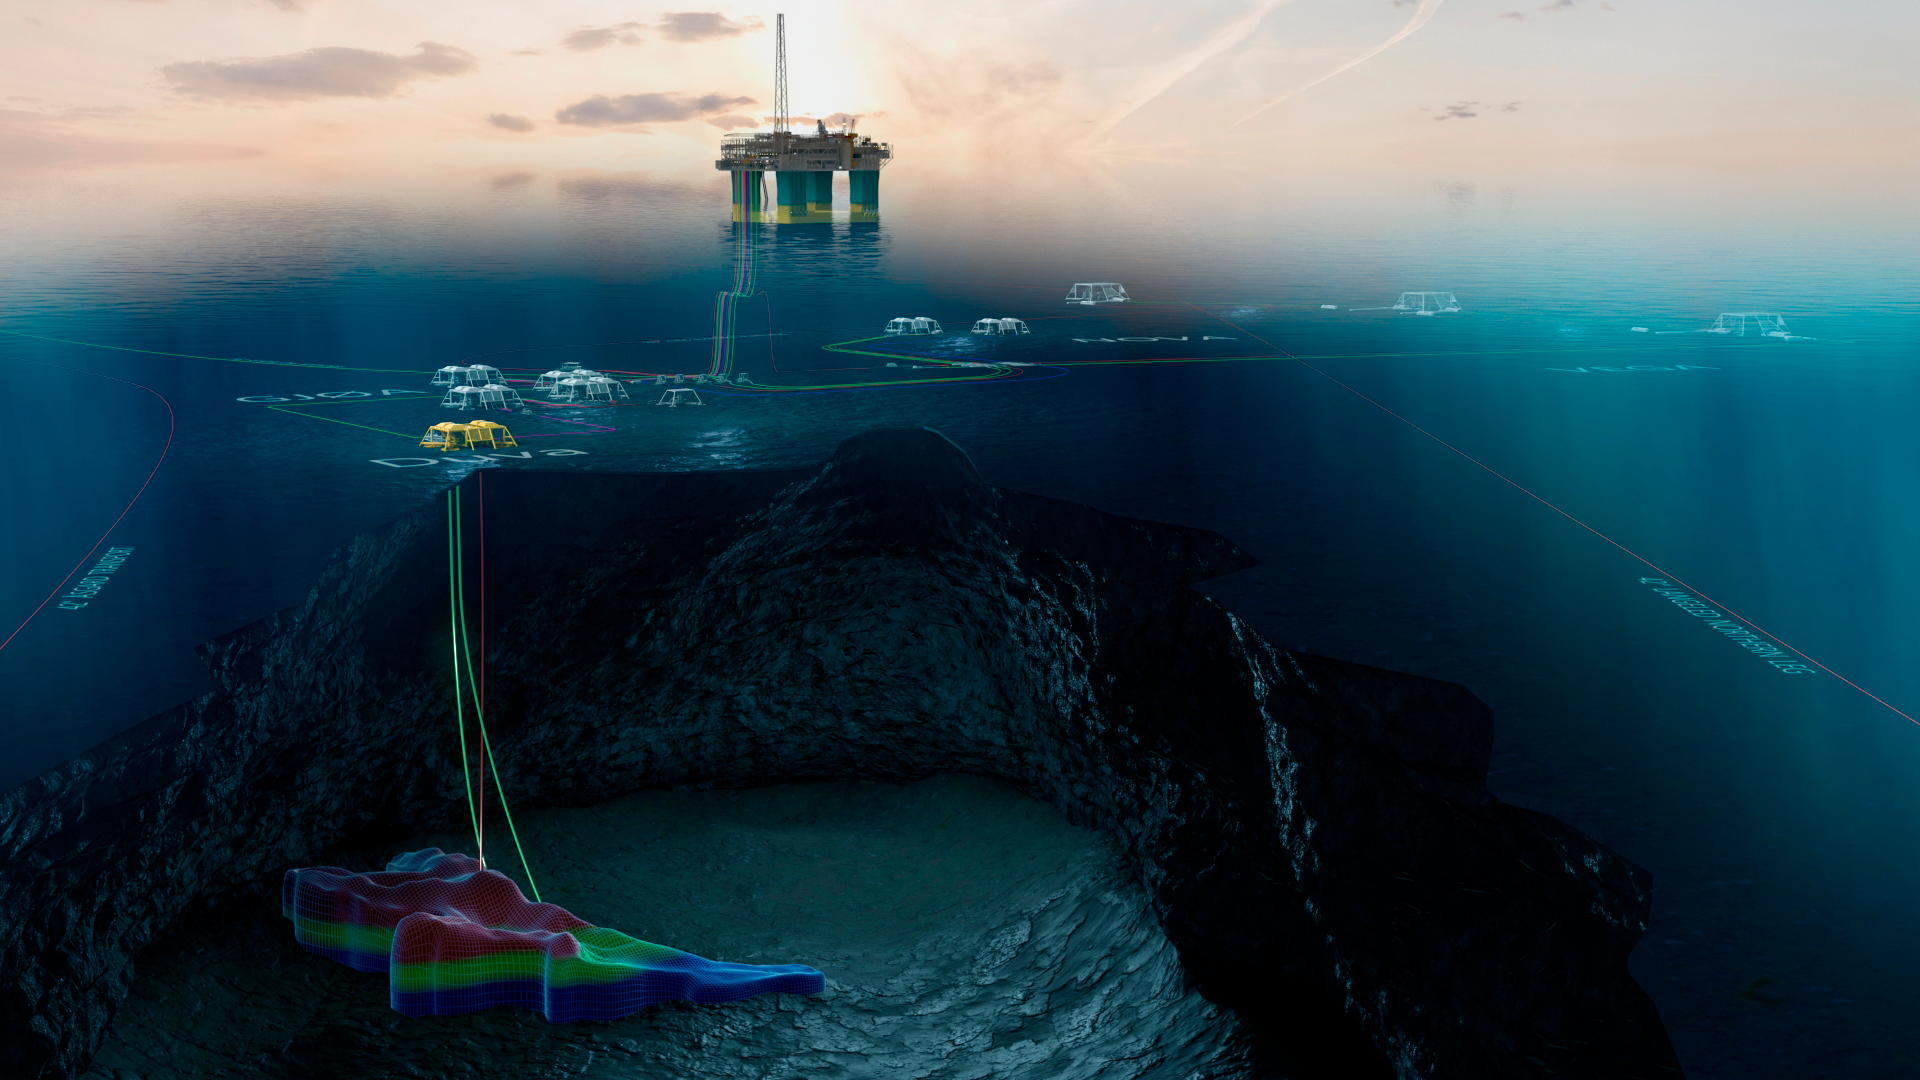 The reserves in Duva are estimated at 14 million standard cubic metres of oil equivalents (88 million barrels). The field will be developed with a subsea facility, and the oil and gas will be transported to Gjøa for processing and export. (Illustration: Neptune Energy)